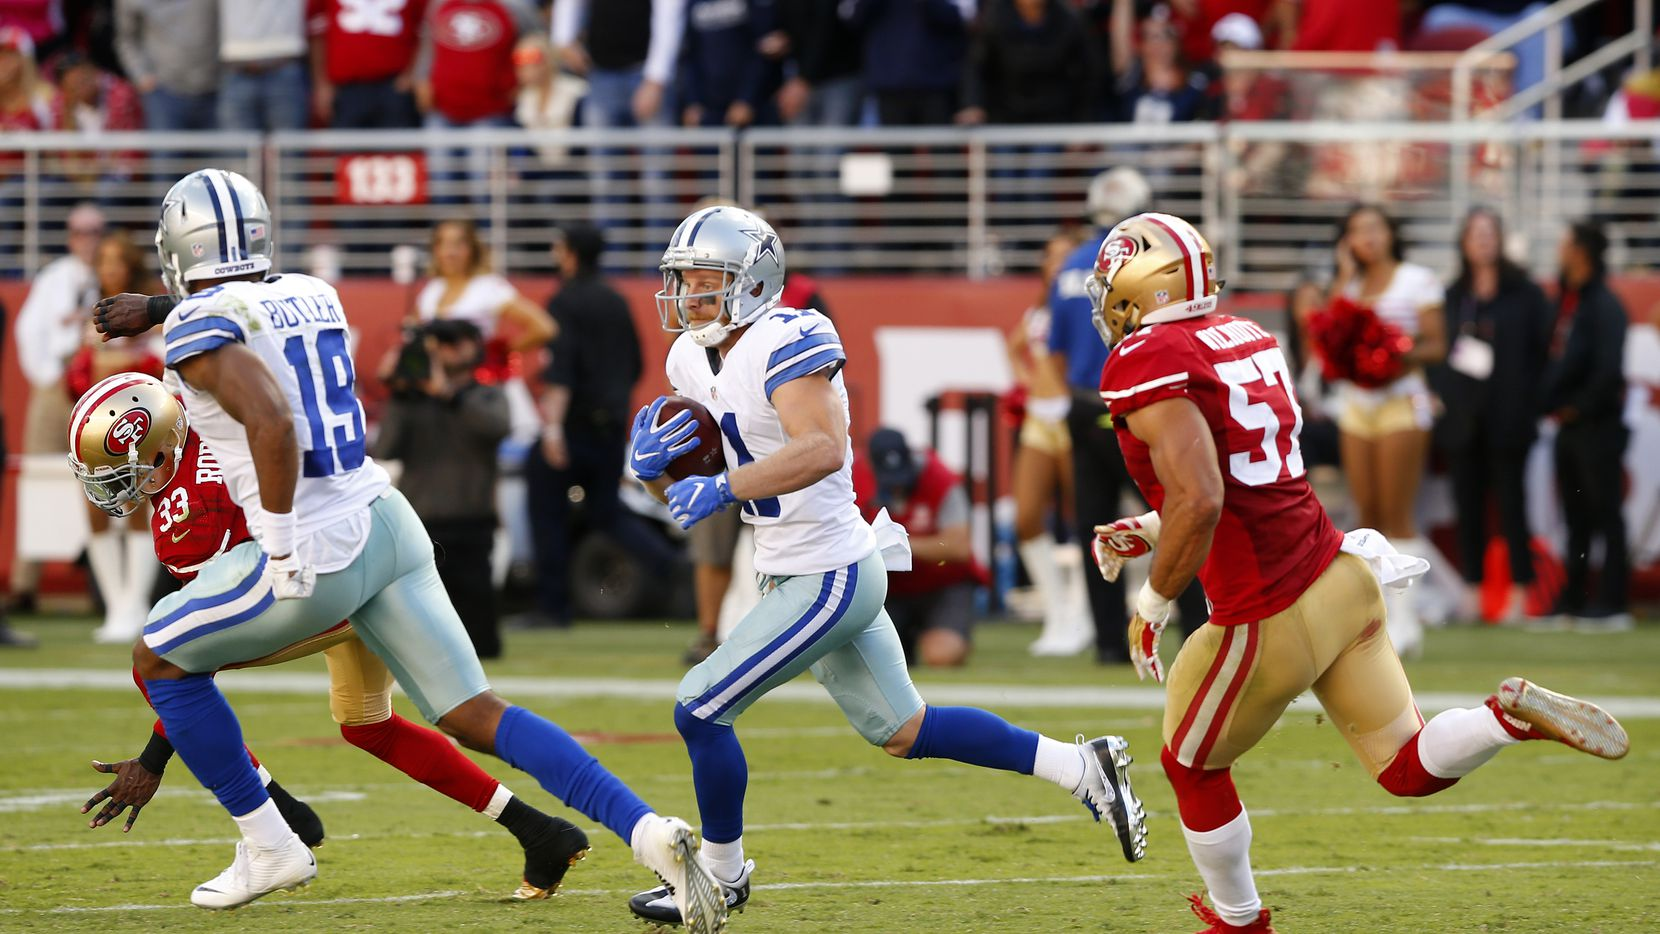 Dallas Cowboys wide receiver Cole Beasley (11) races across  the field as he is pursued by San Francisco 49ers inside linebacker Michael Wilhoite (57) in the third quarter at Levi's Stadium in Santa Clara, California, Sunday, October 2, 2016.(Tom Fox/The Dallas Morning News)